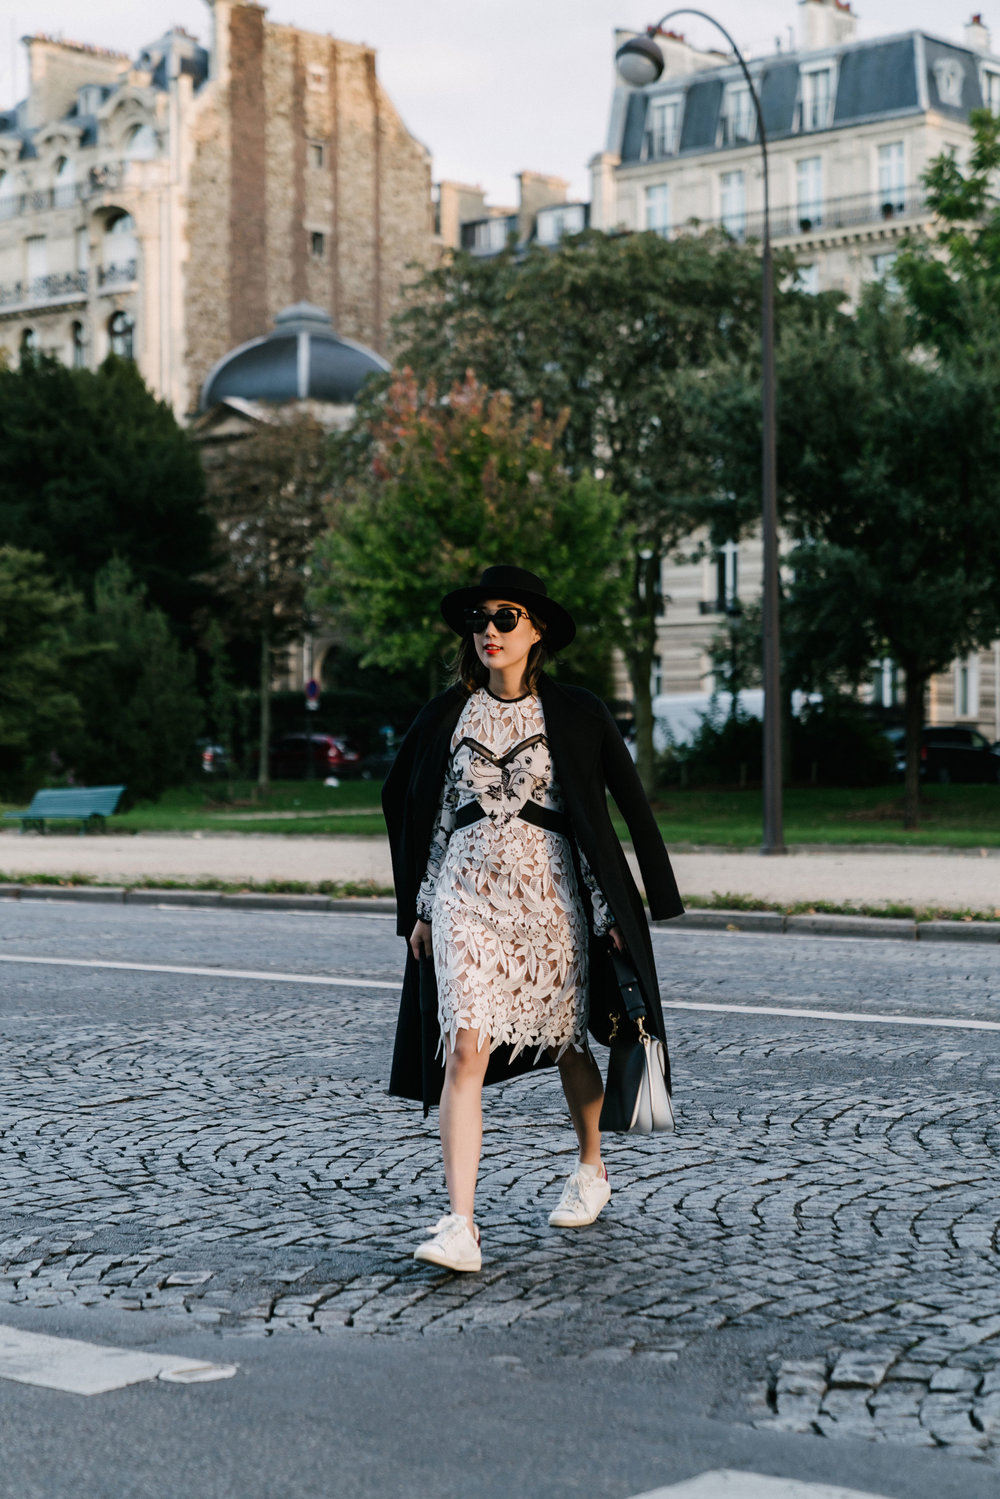 Kuho Coat, Self Portrait Dress, Isabel Marant Shoes, J.W.Anderson Bag, Fendi Sunglasses, Janessa Leone Hat